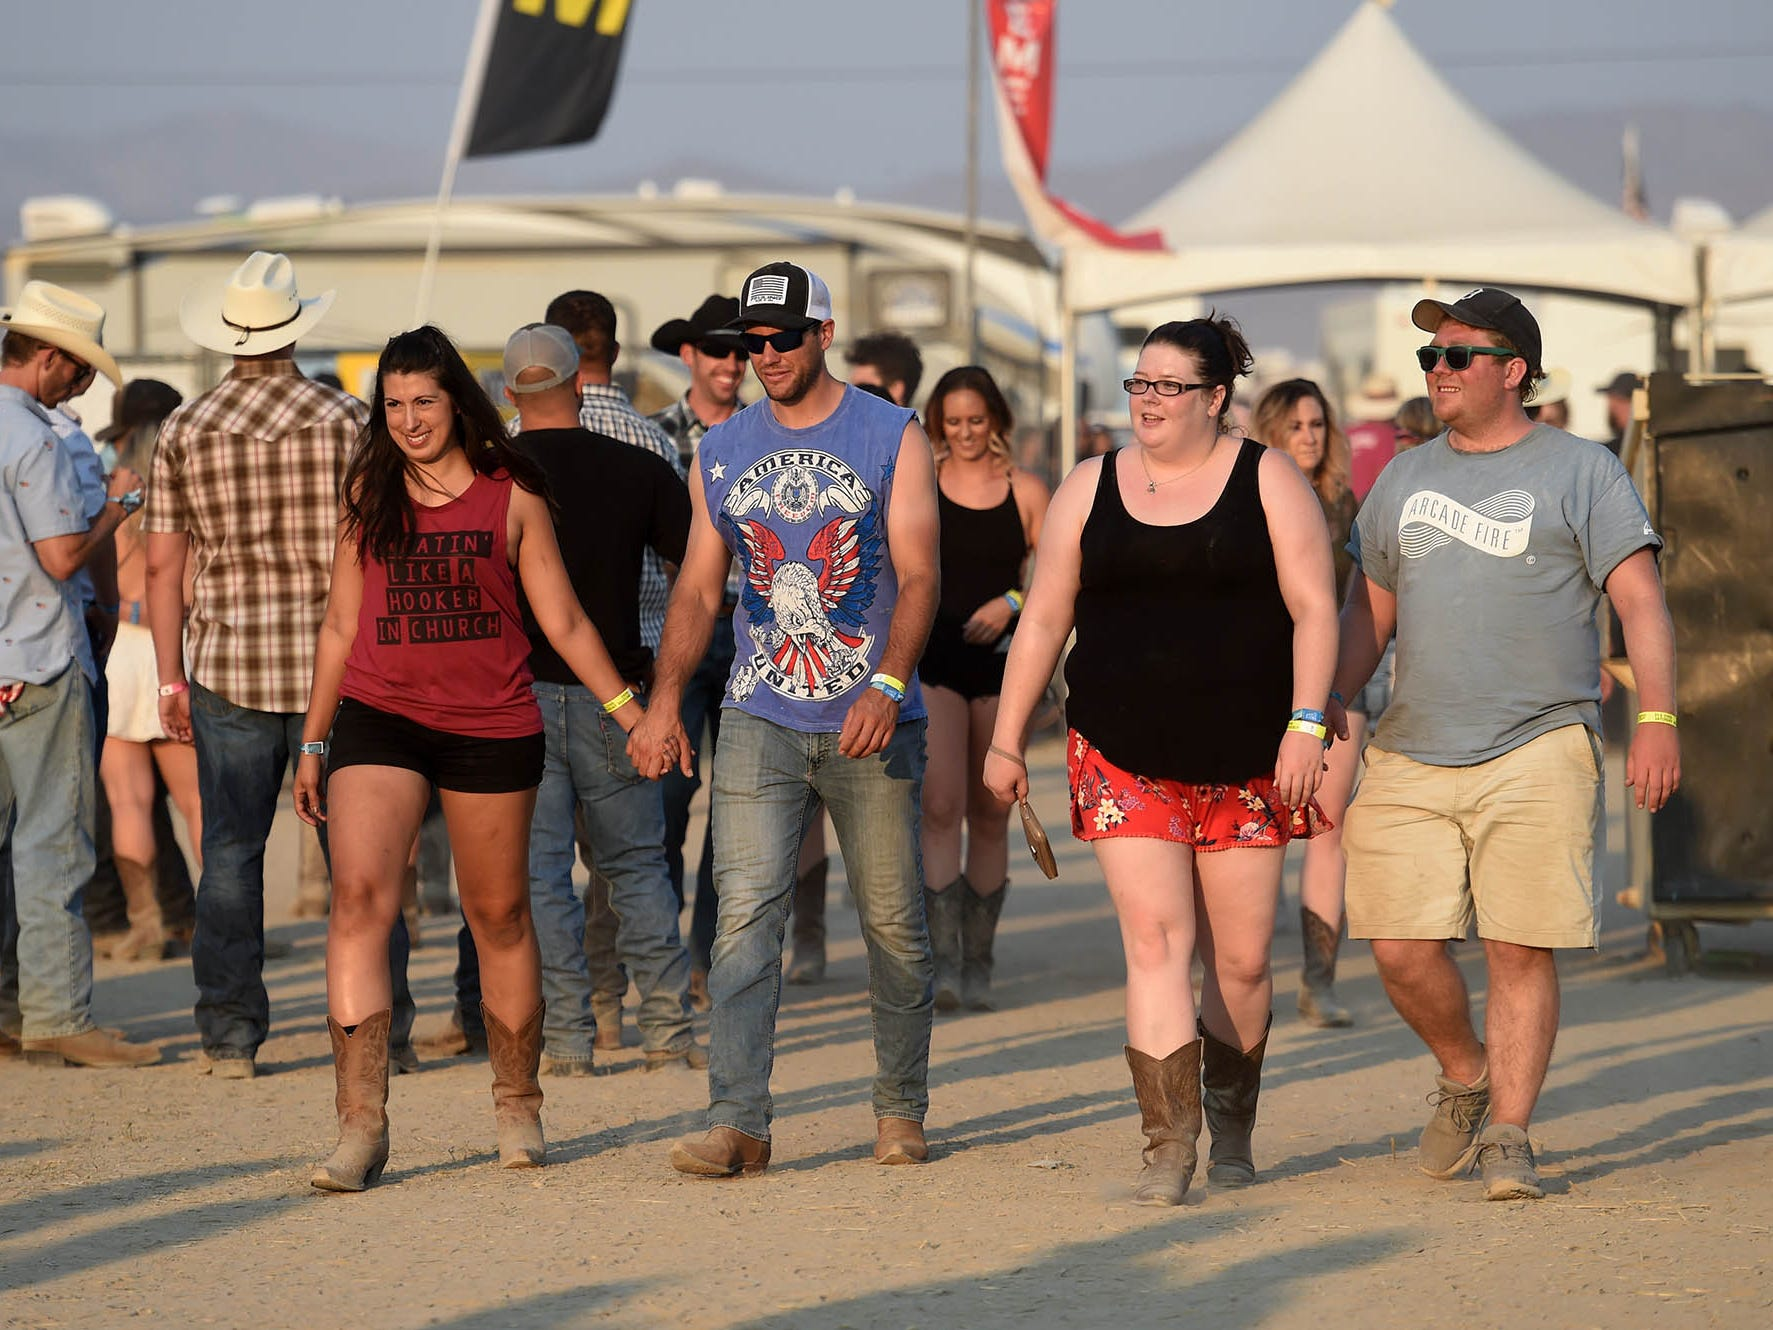 The fun continues on the final day of Night in the Country where thousands of country fans gathered at the country music festival in Yerington, Nevada on July 28, 2018.